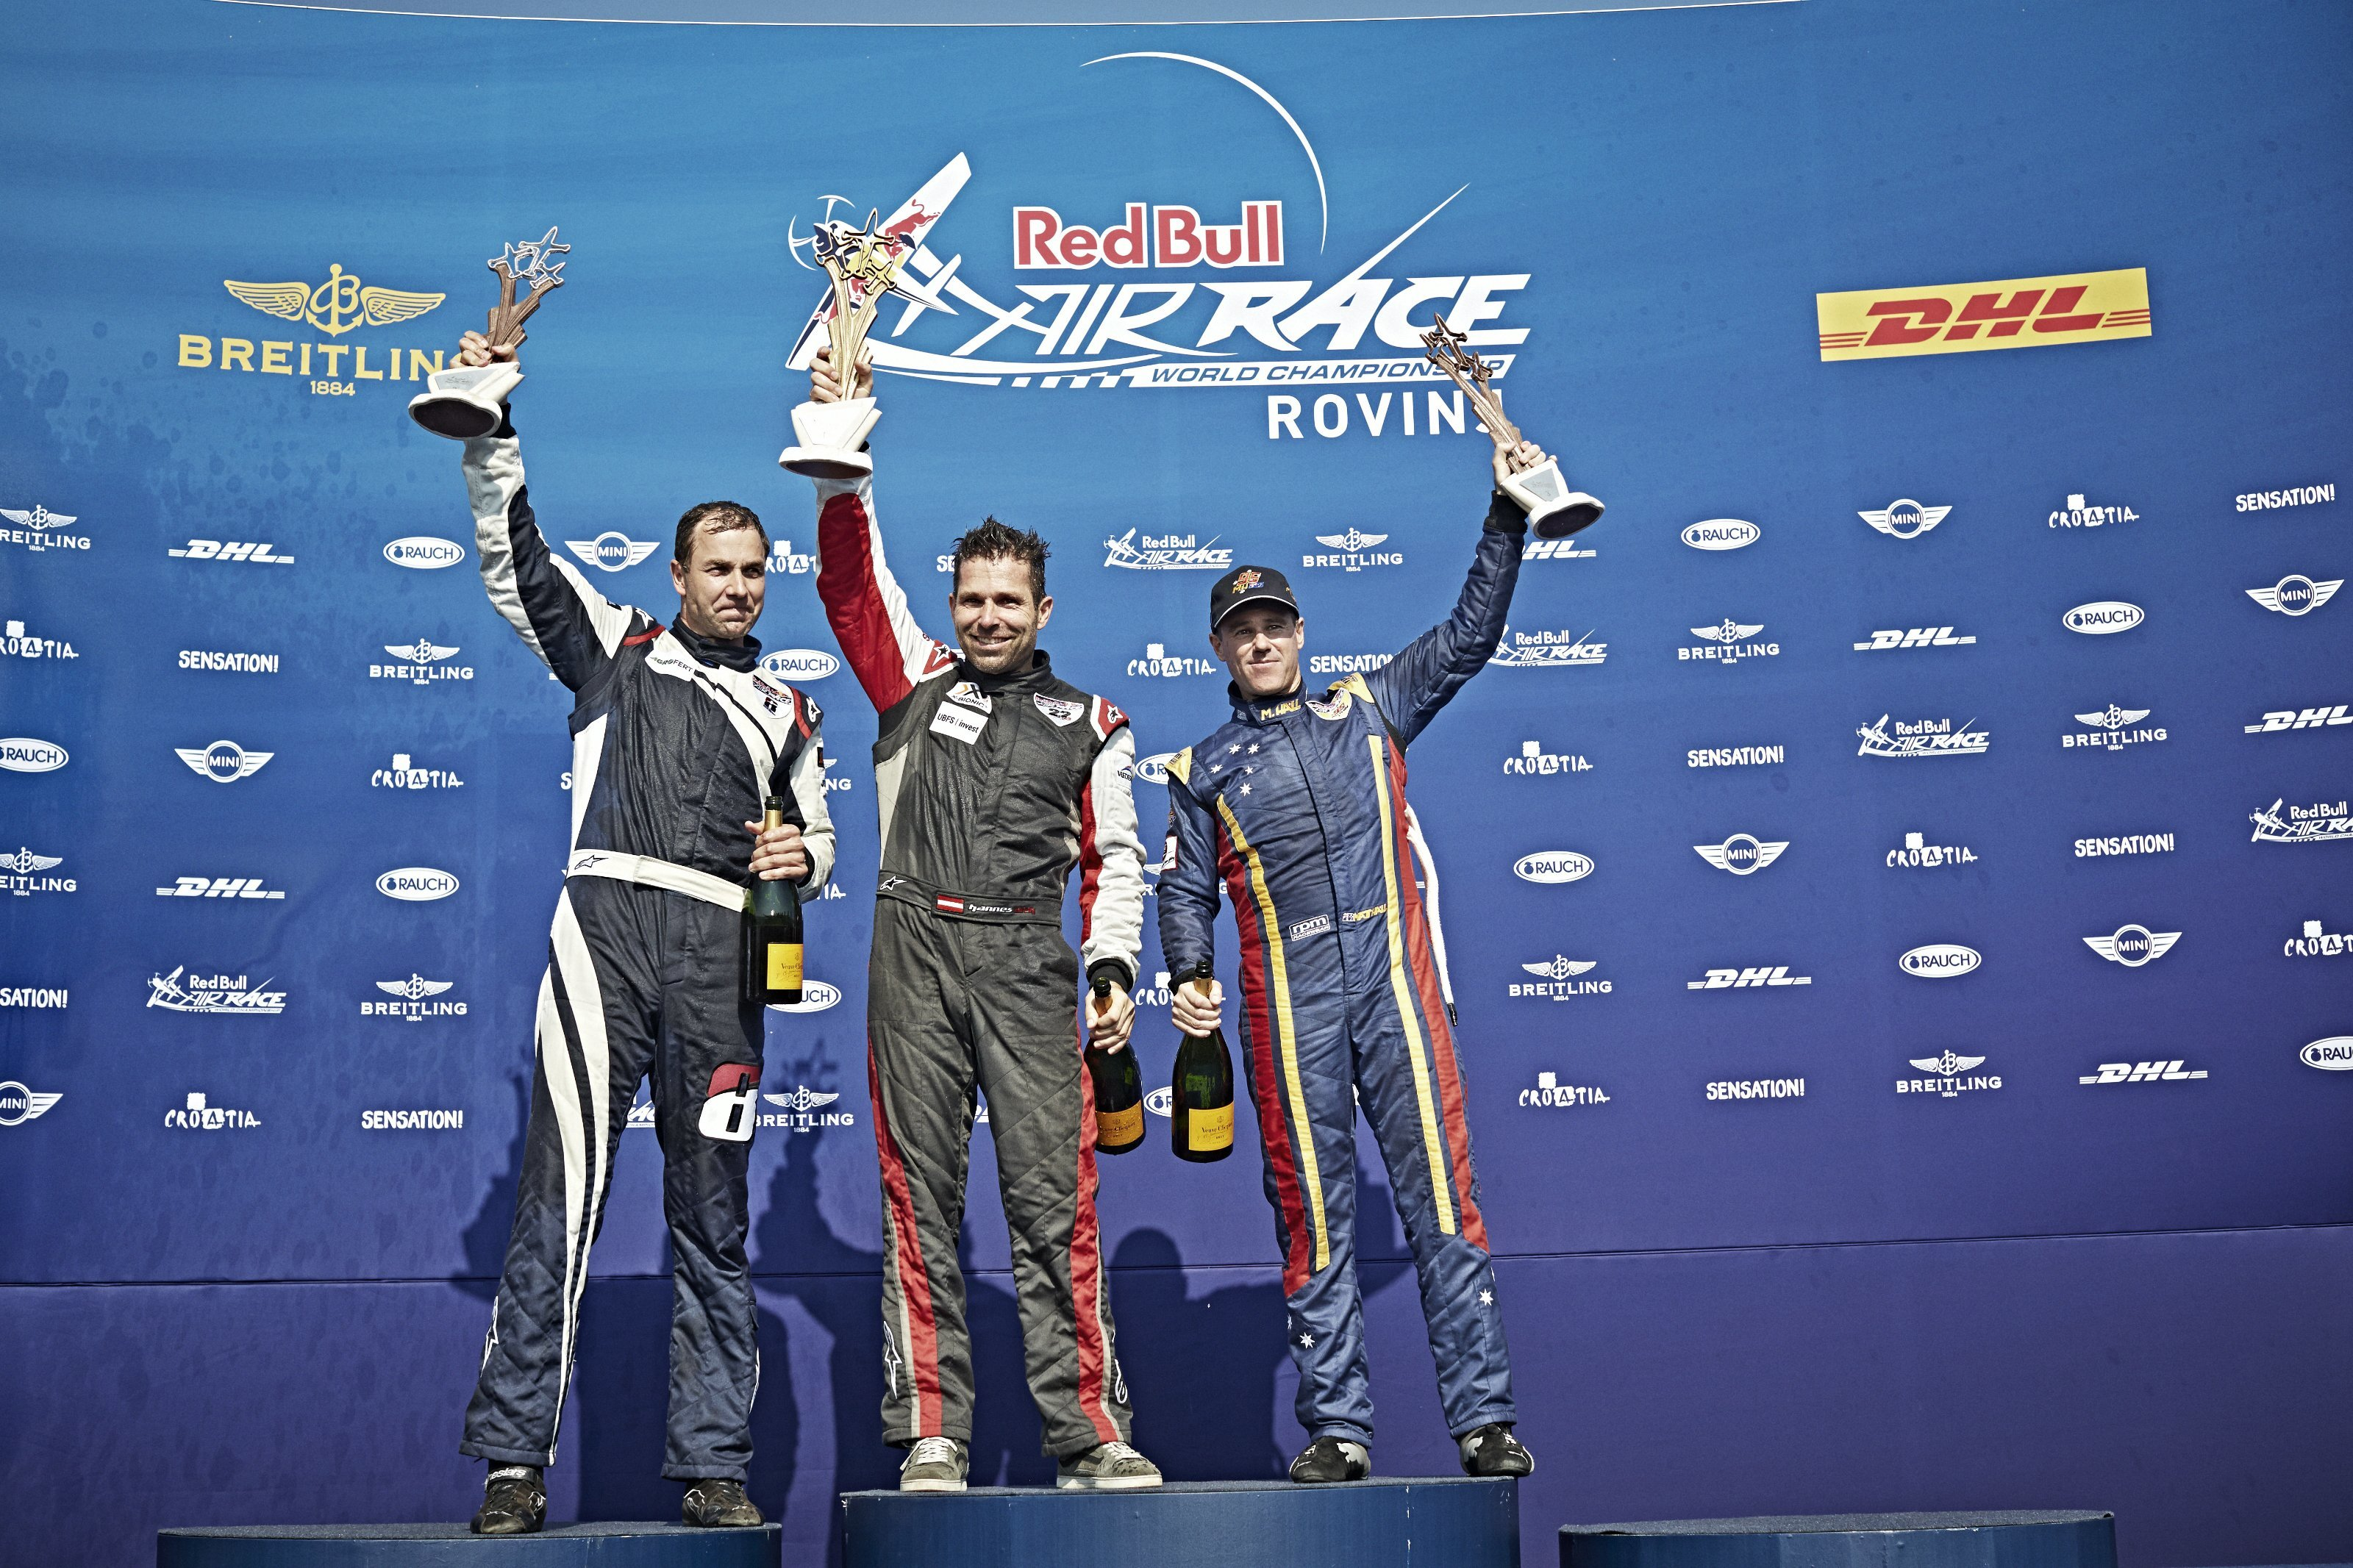 RED BULL AIR RACE: Bonhomme holds onto Red Bull Air Race lead, Lamb stays in title hunt